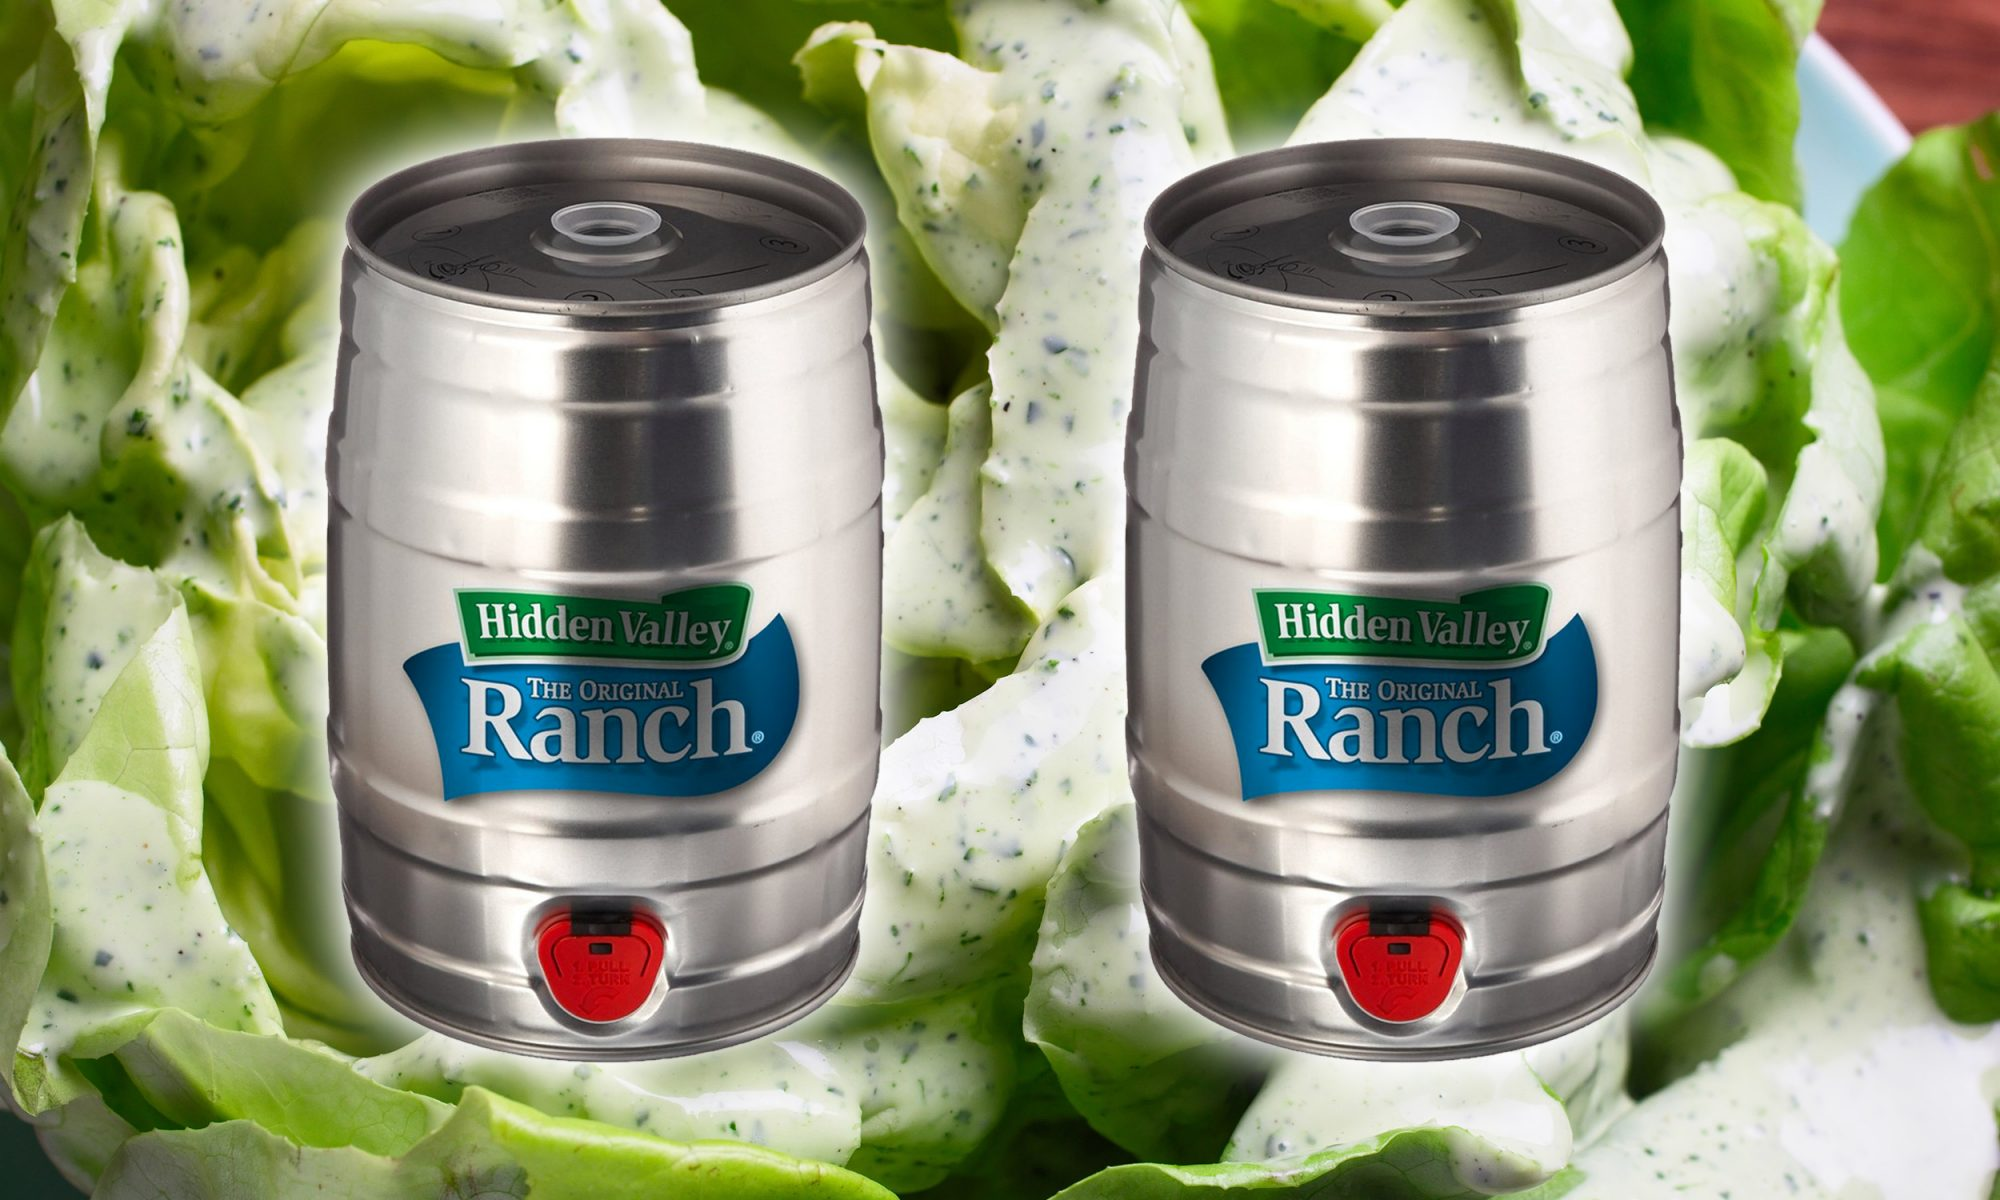 EC: You Can Buy a Keg of Ranch Now, Just in Time for the Holidays